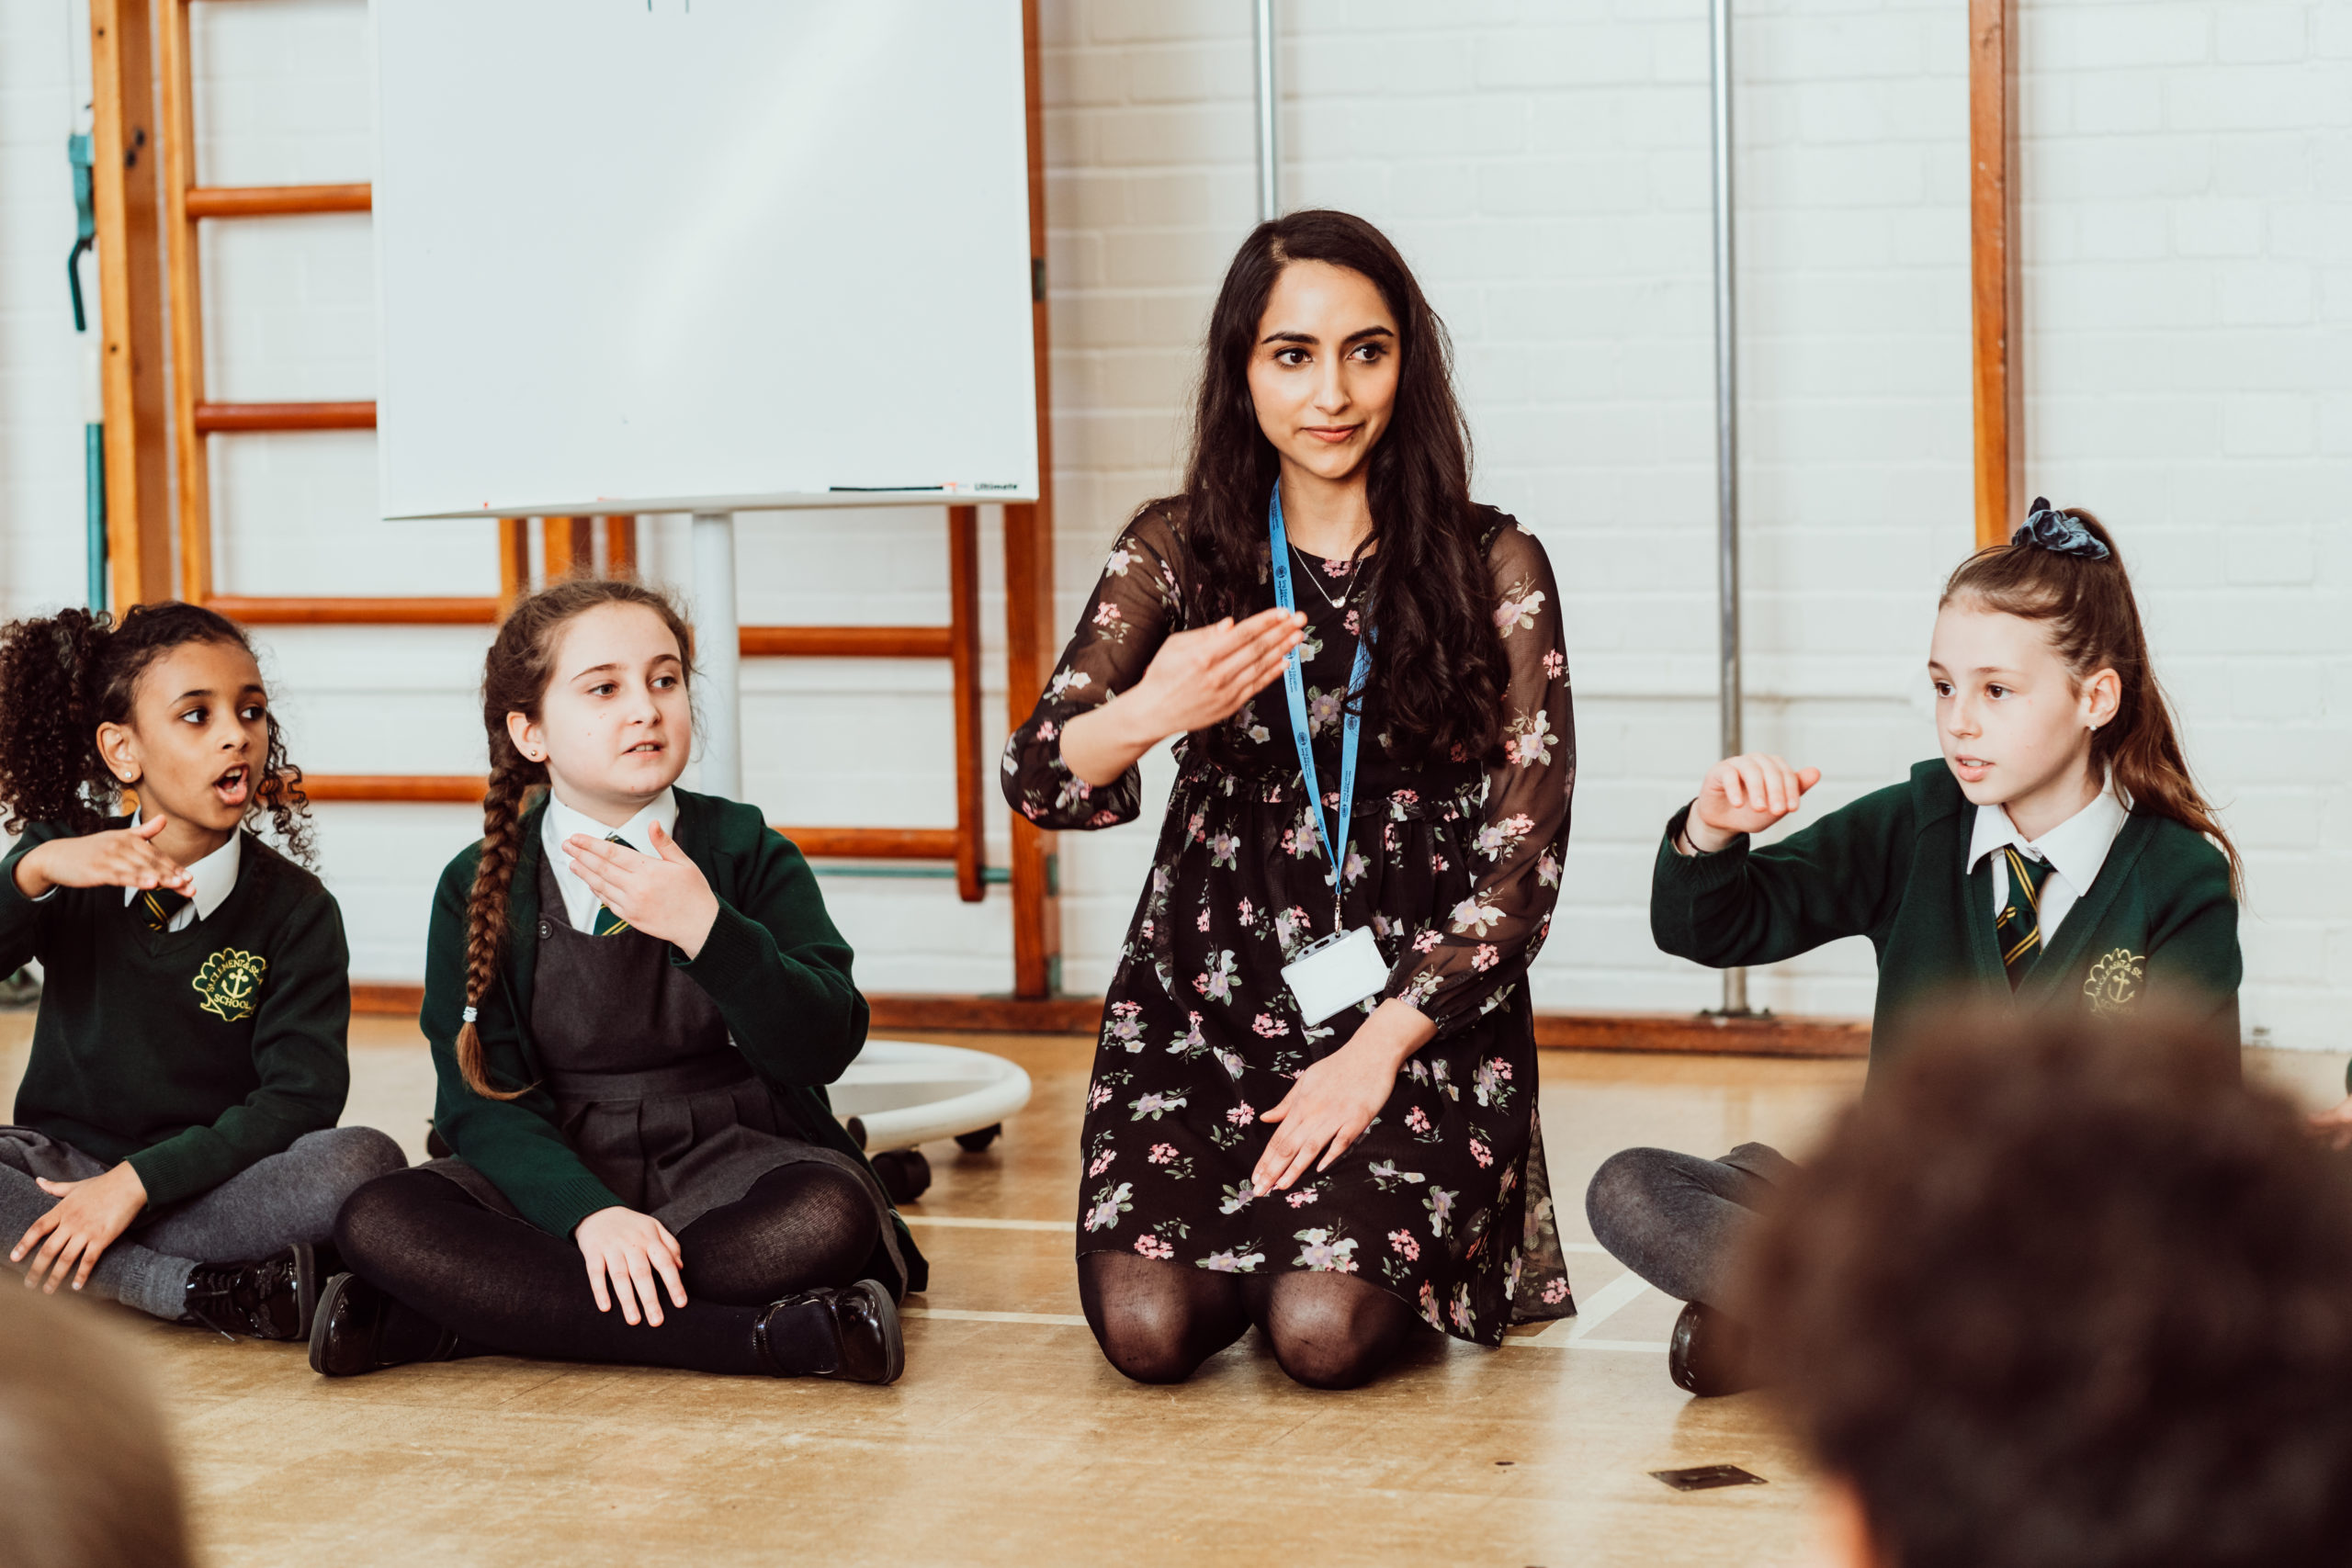 Female kneeling on the floor with hand out in front of her, three primary pupils sitting next to her copying.